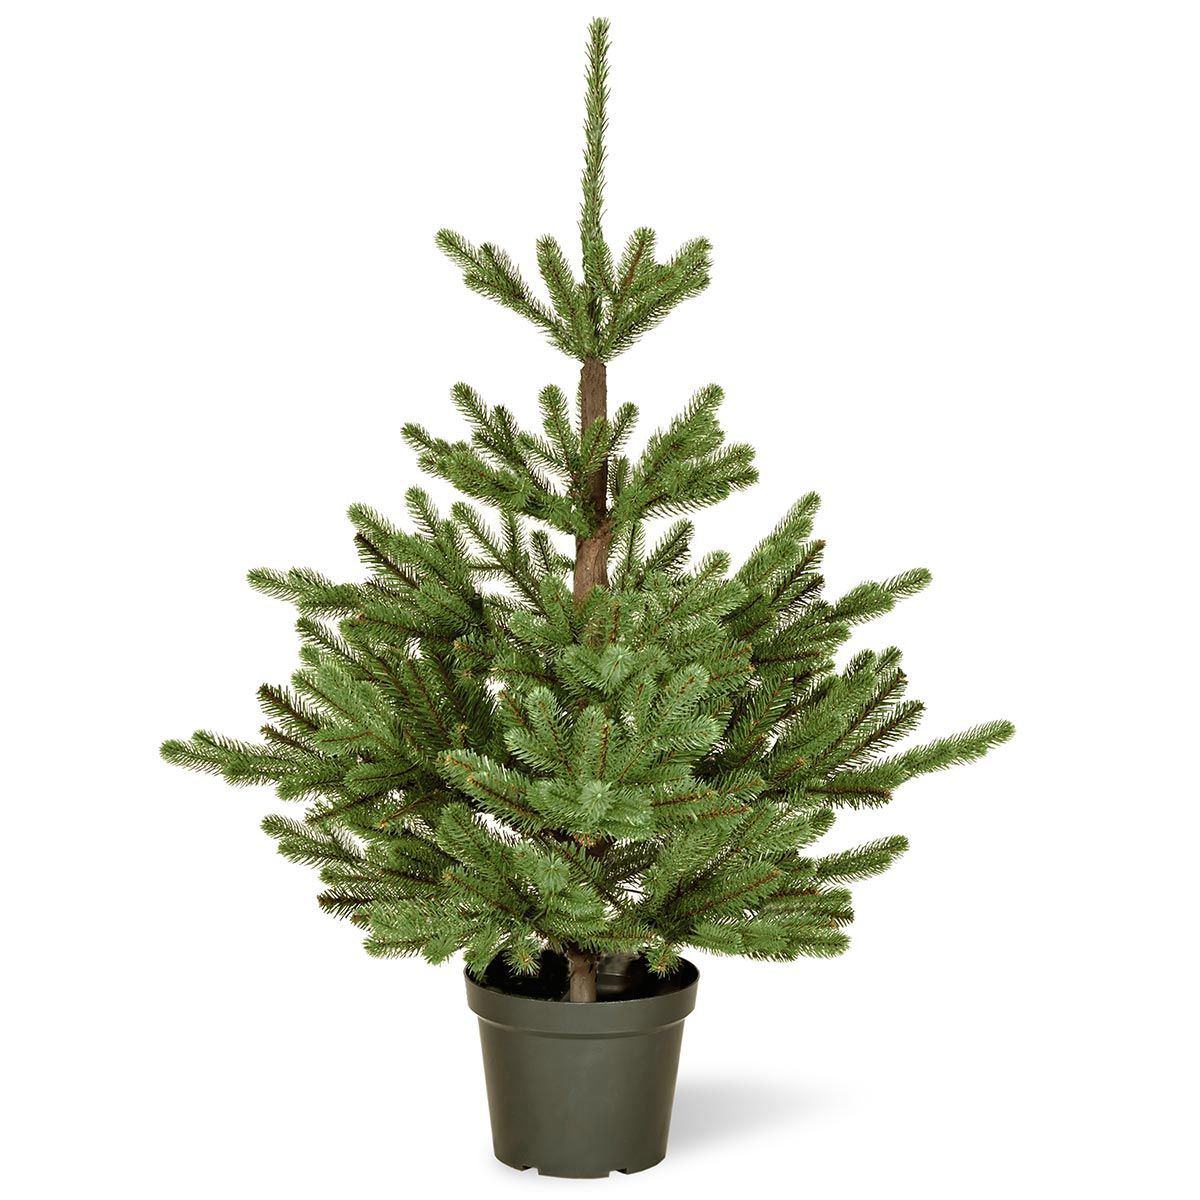 3ft Imperial Spruce Potted Feel Real Artificial Christmas Tree Potted Christmas Trees Artificial Christmas Tree Christmas Plants